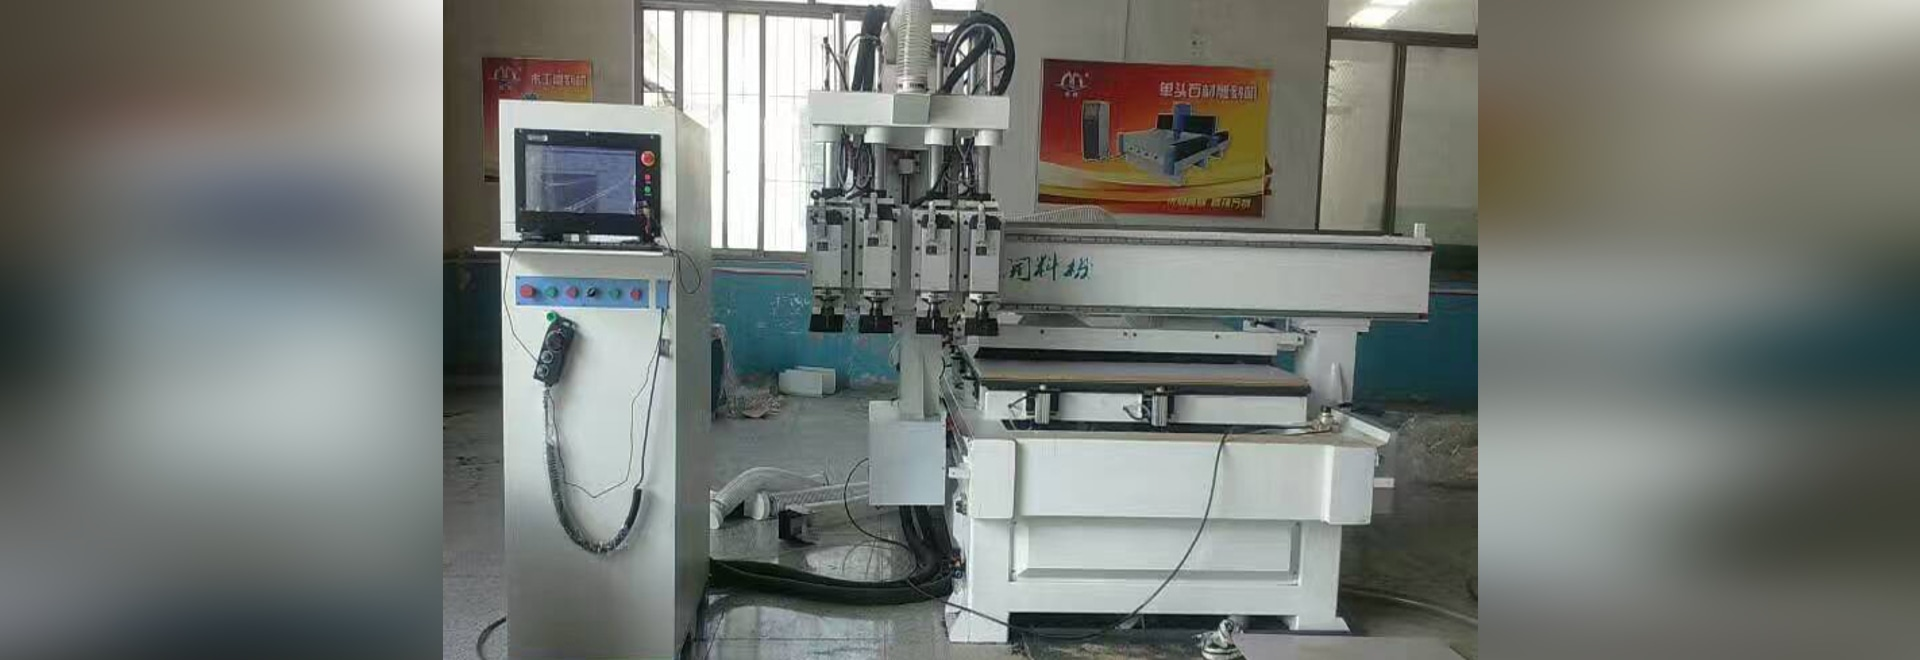 This machine is economic ATC CNC router for nest cutting, drilling, carving and slotting. It is designed for processing cabinet, wardrobe, closet,etc And double working position ensures processing ...